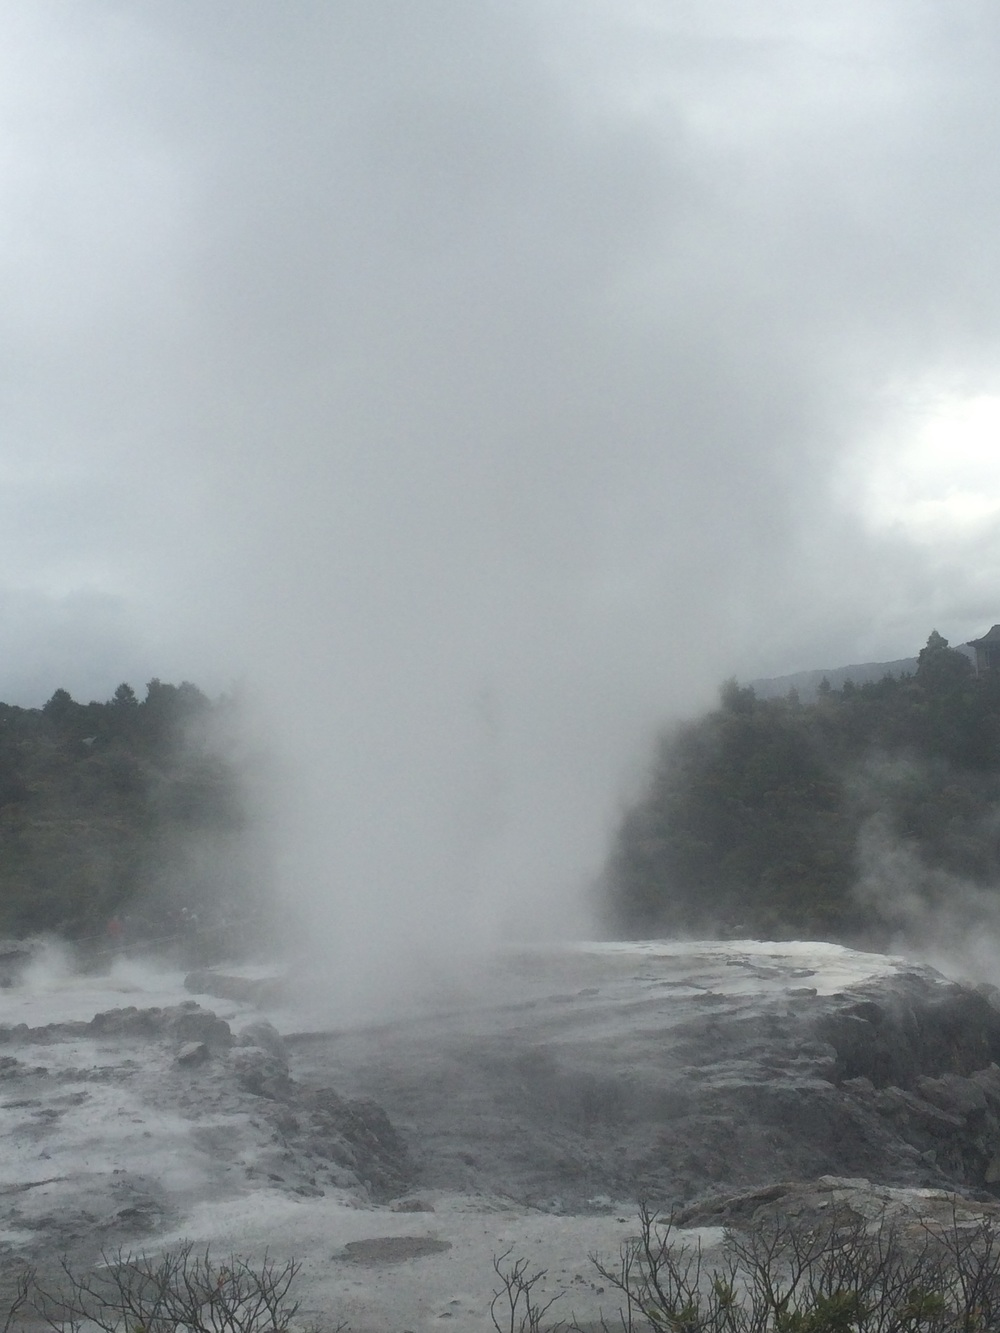 Gysers by day....